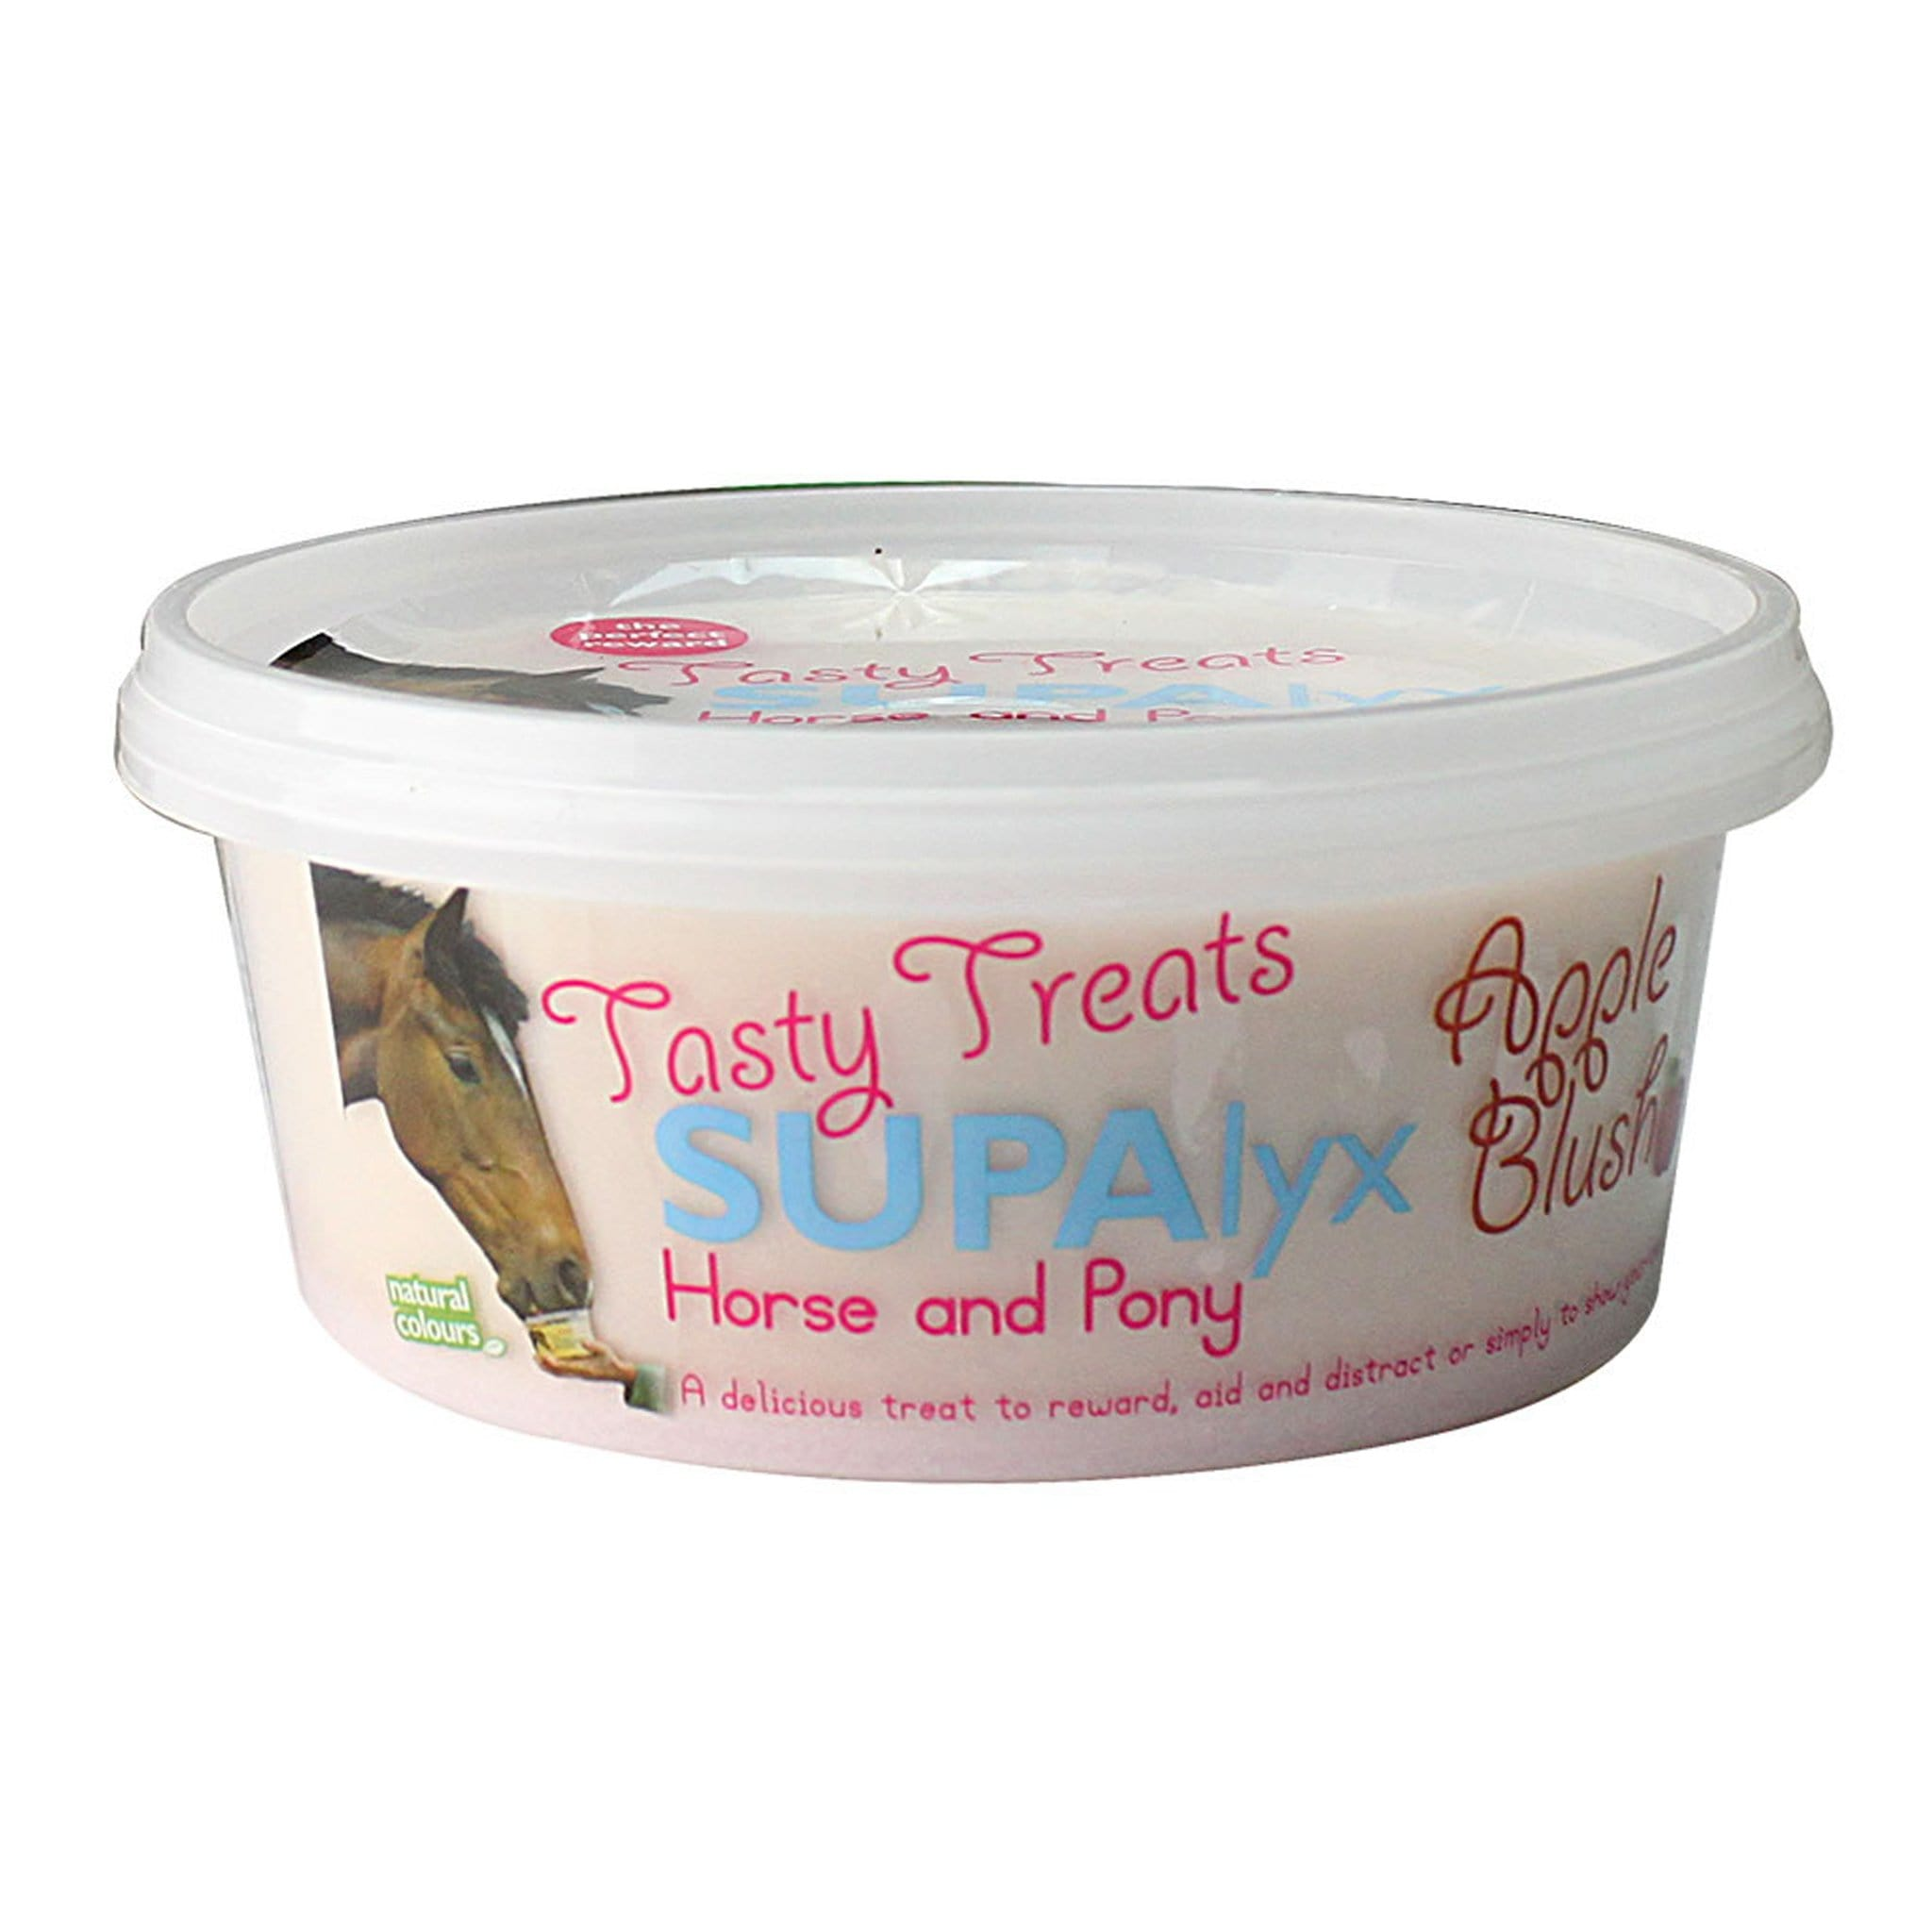 Nettex Equine Supalyx Tasty Treats NET0360 Apple Blush